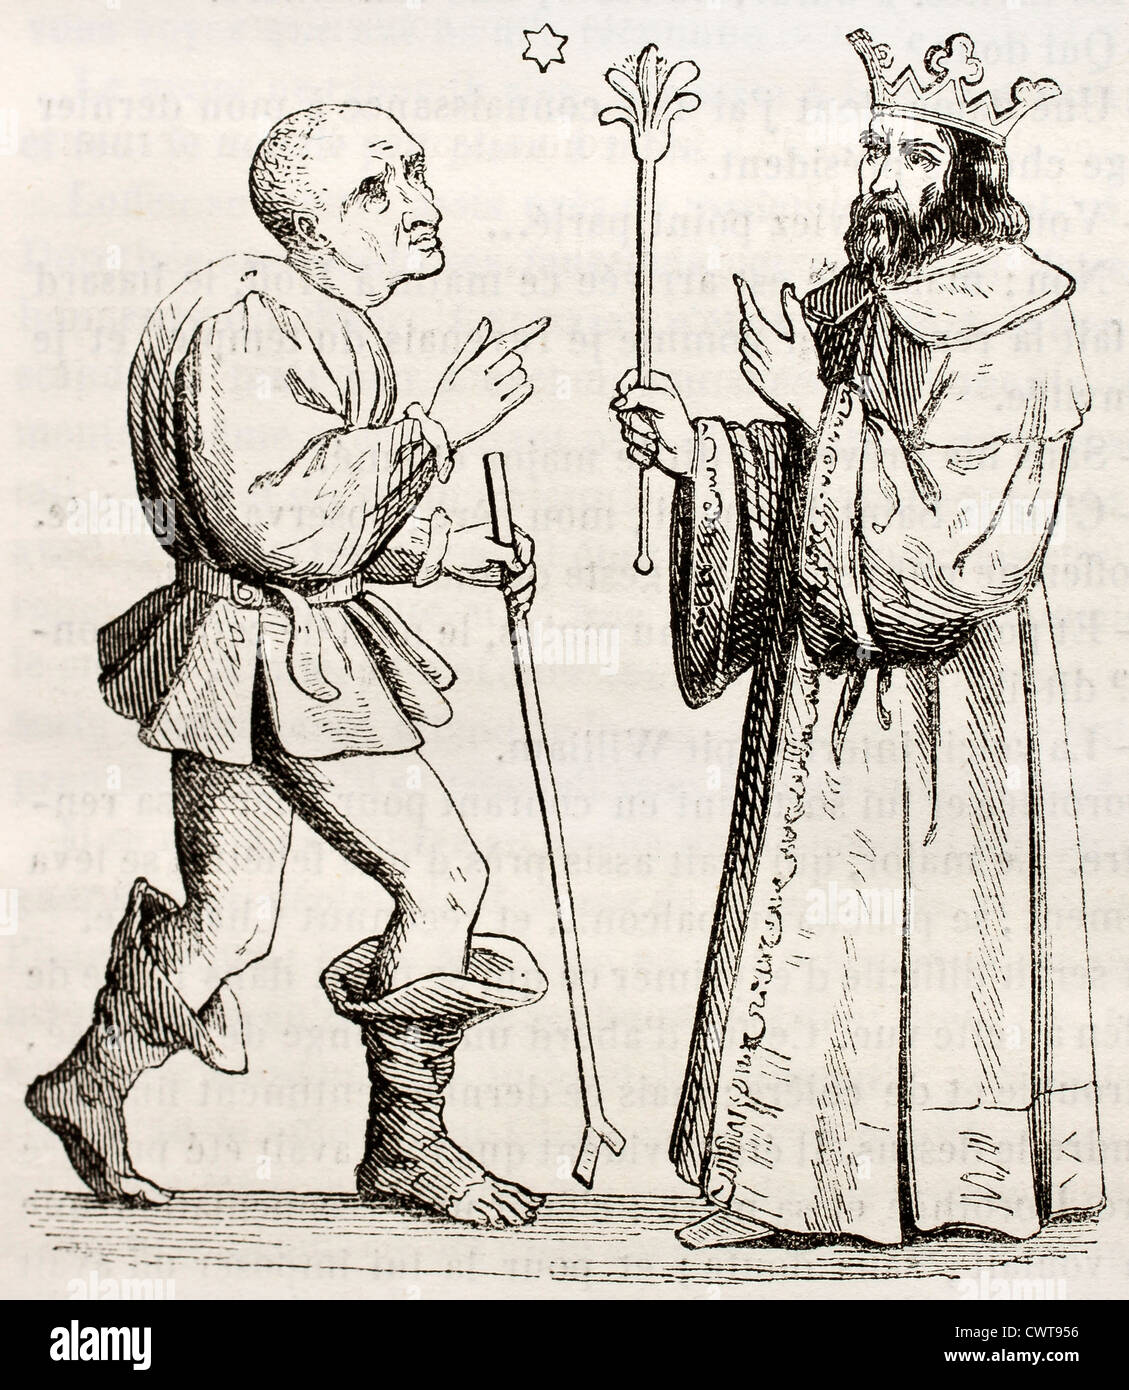 King Salomon and his jester Marcolphe - Stock Image